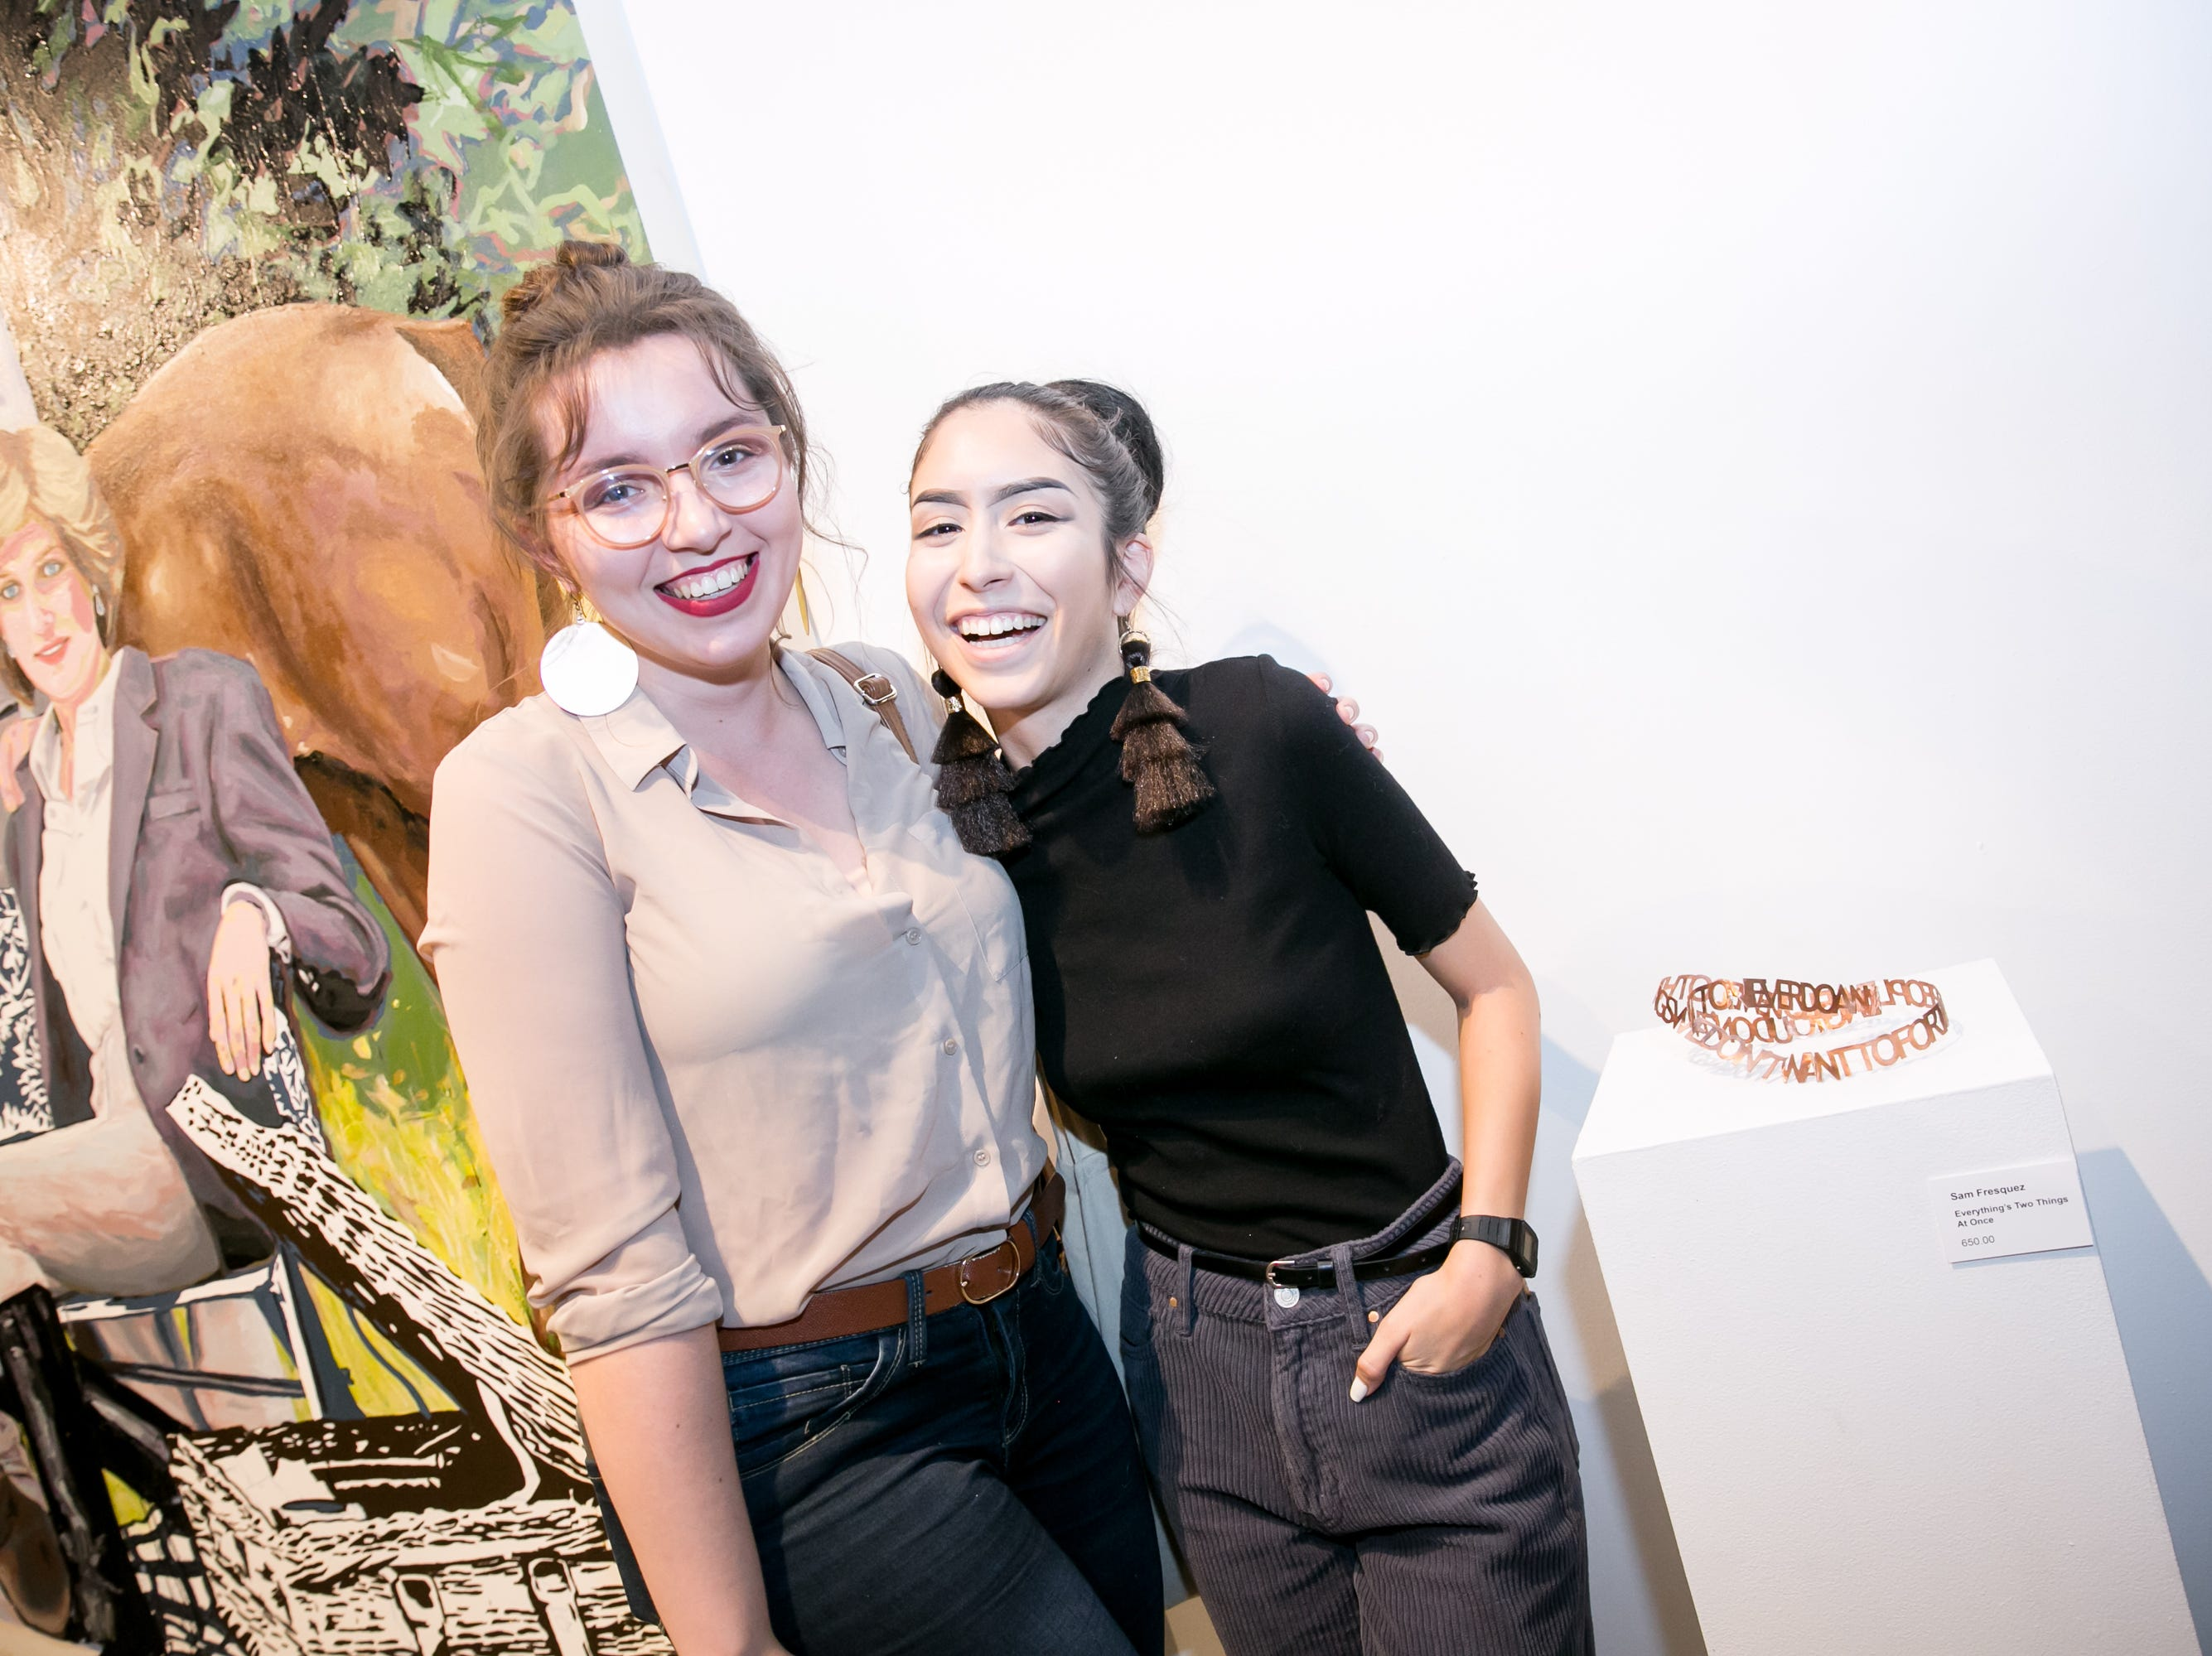 Sam Fresquez (right) poses with a friend next to her art at Chaos Theory 19 at Legend City Studios during First Friday on October 5, 2018.